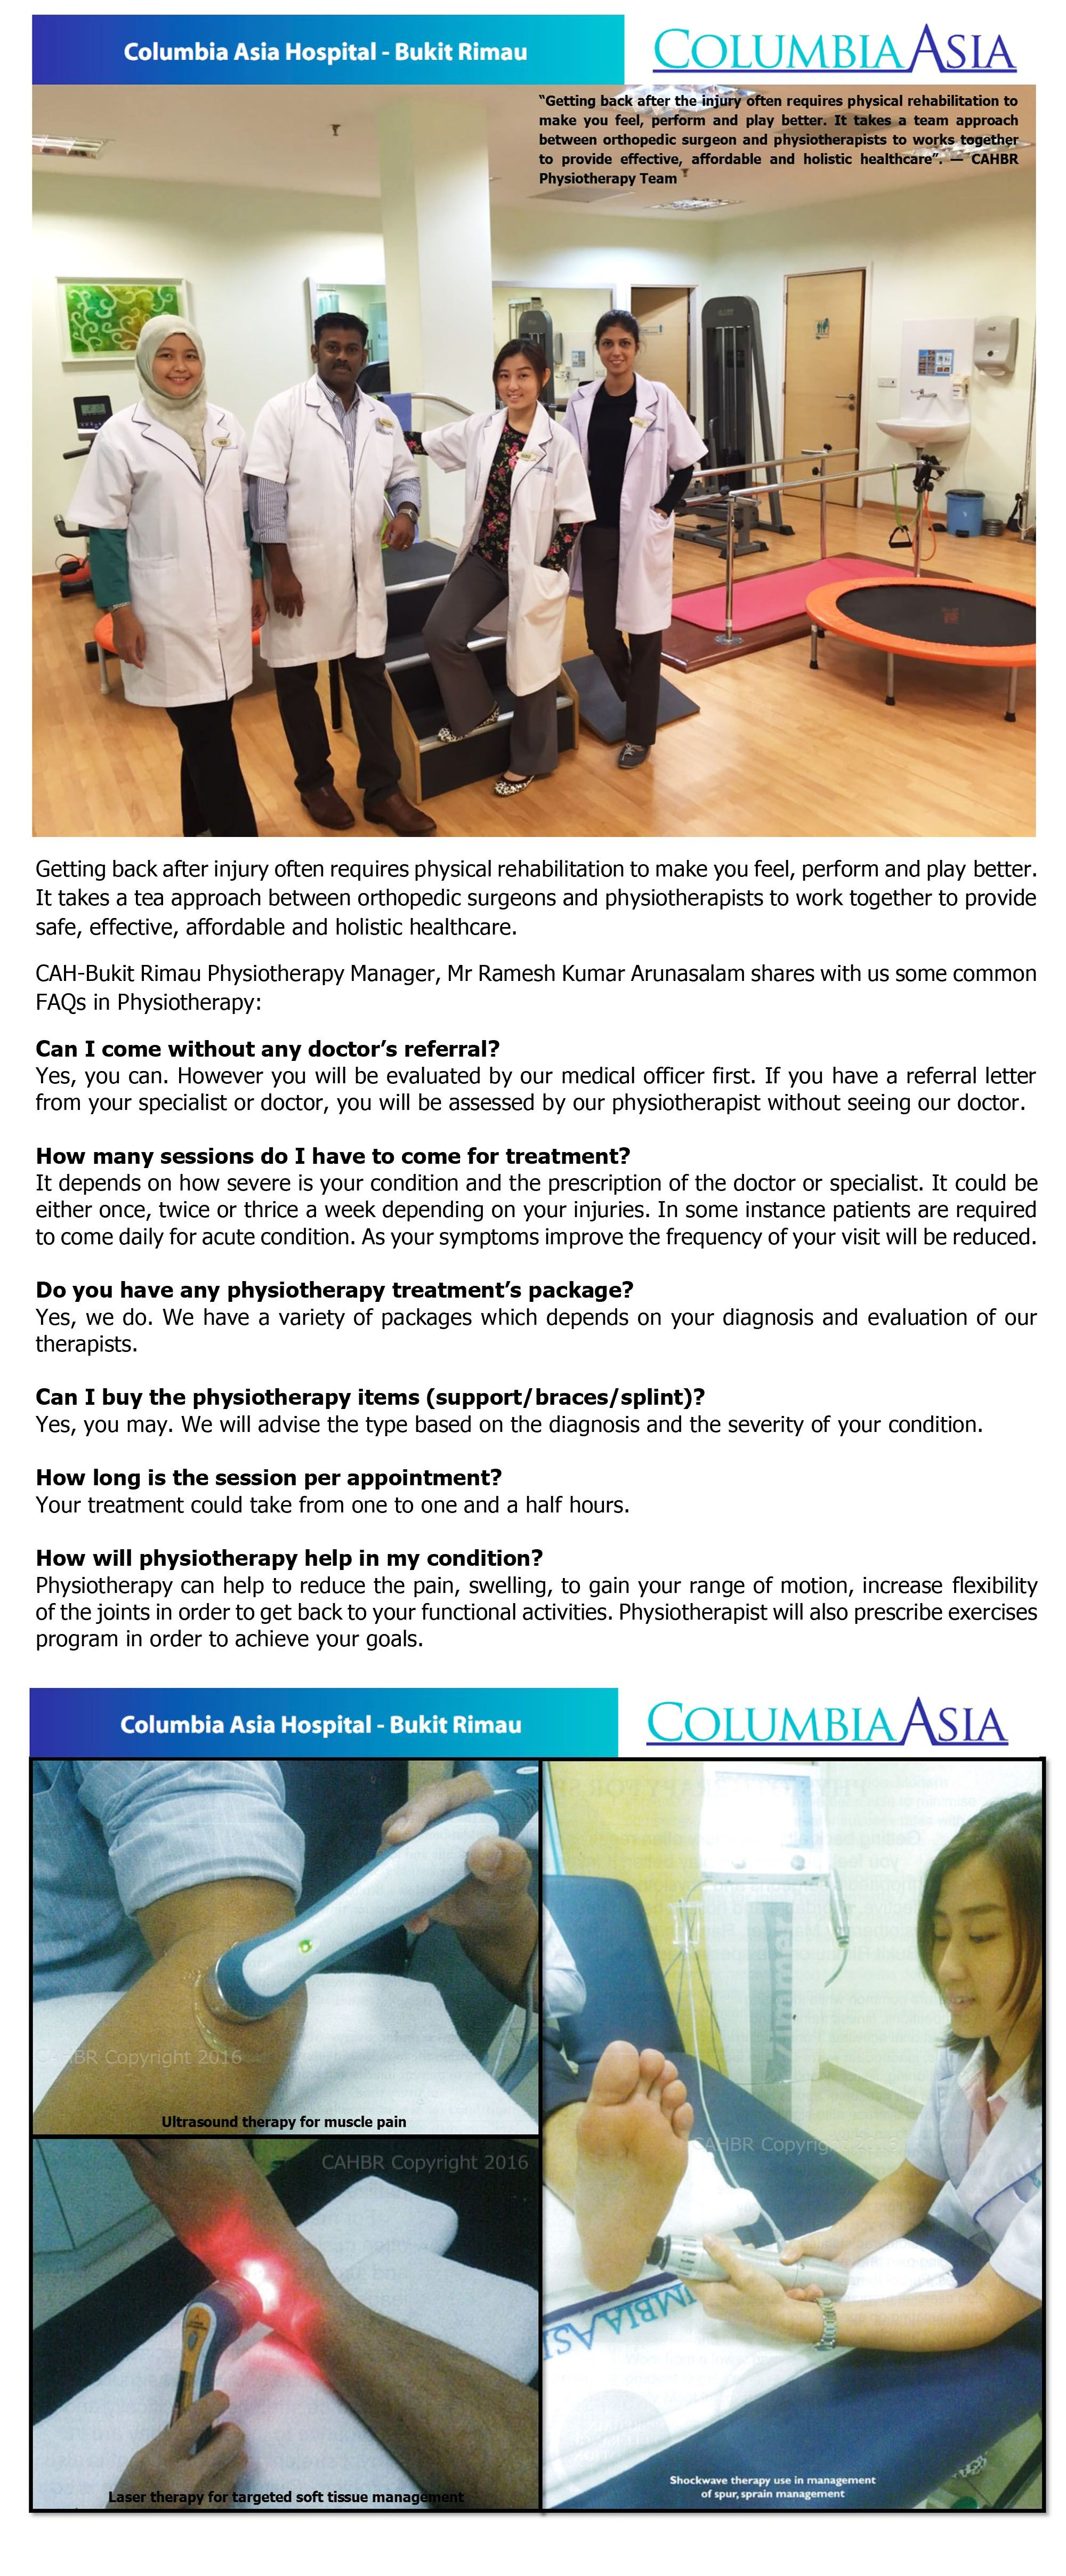 Columbia Asia Medical Centre Design Interior Jpg 1 000 1: Physiotherapy Manager Of Columbia